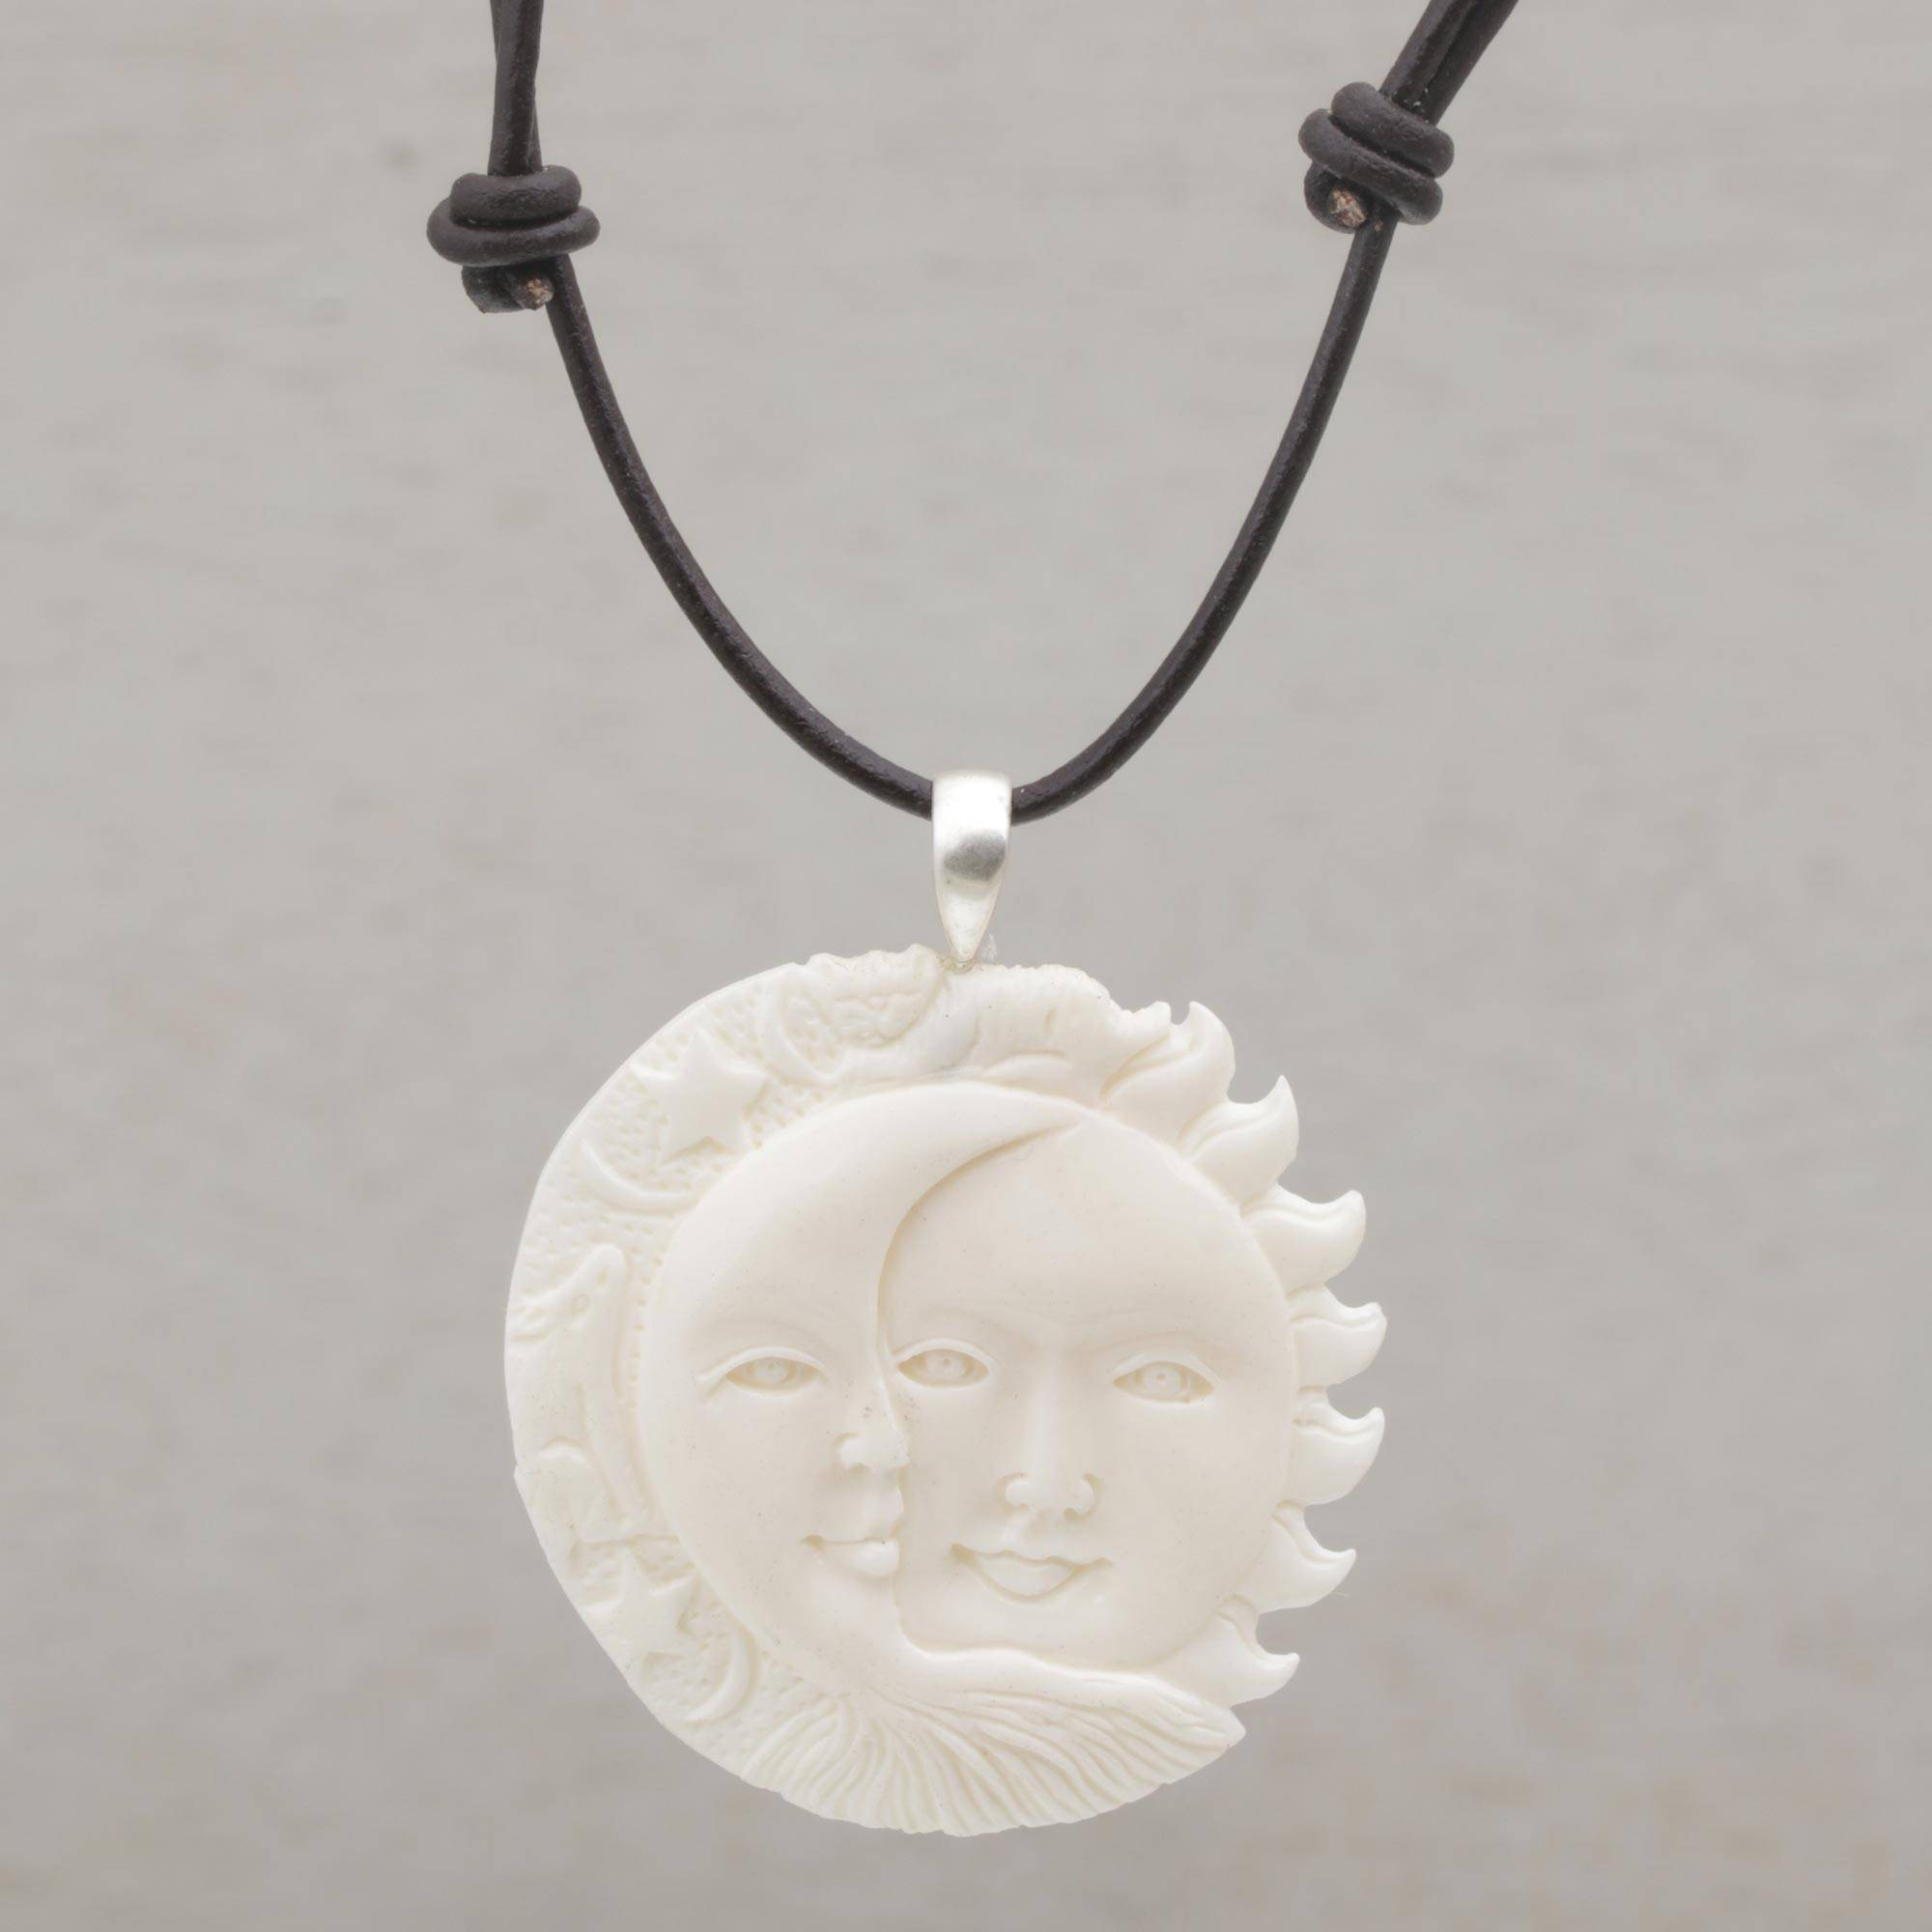 Unicef Market Handcrafted Sun And Moon Bone Pendant Necklace From Bali Stellar Guardians